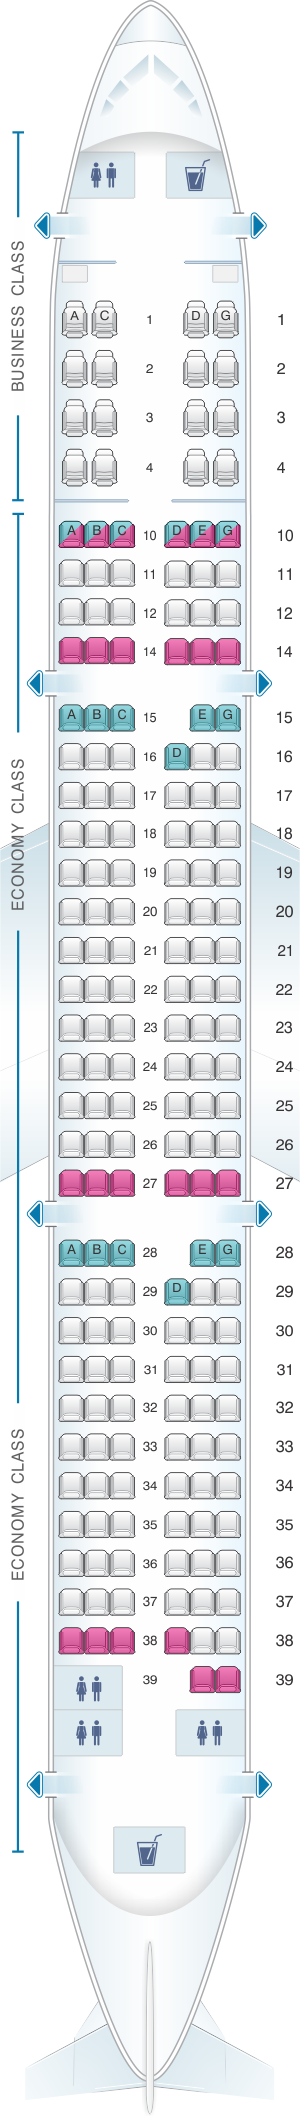 Seat map for Vietnam Airlines Airbus A321 Config.2